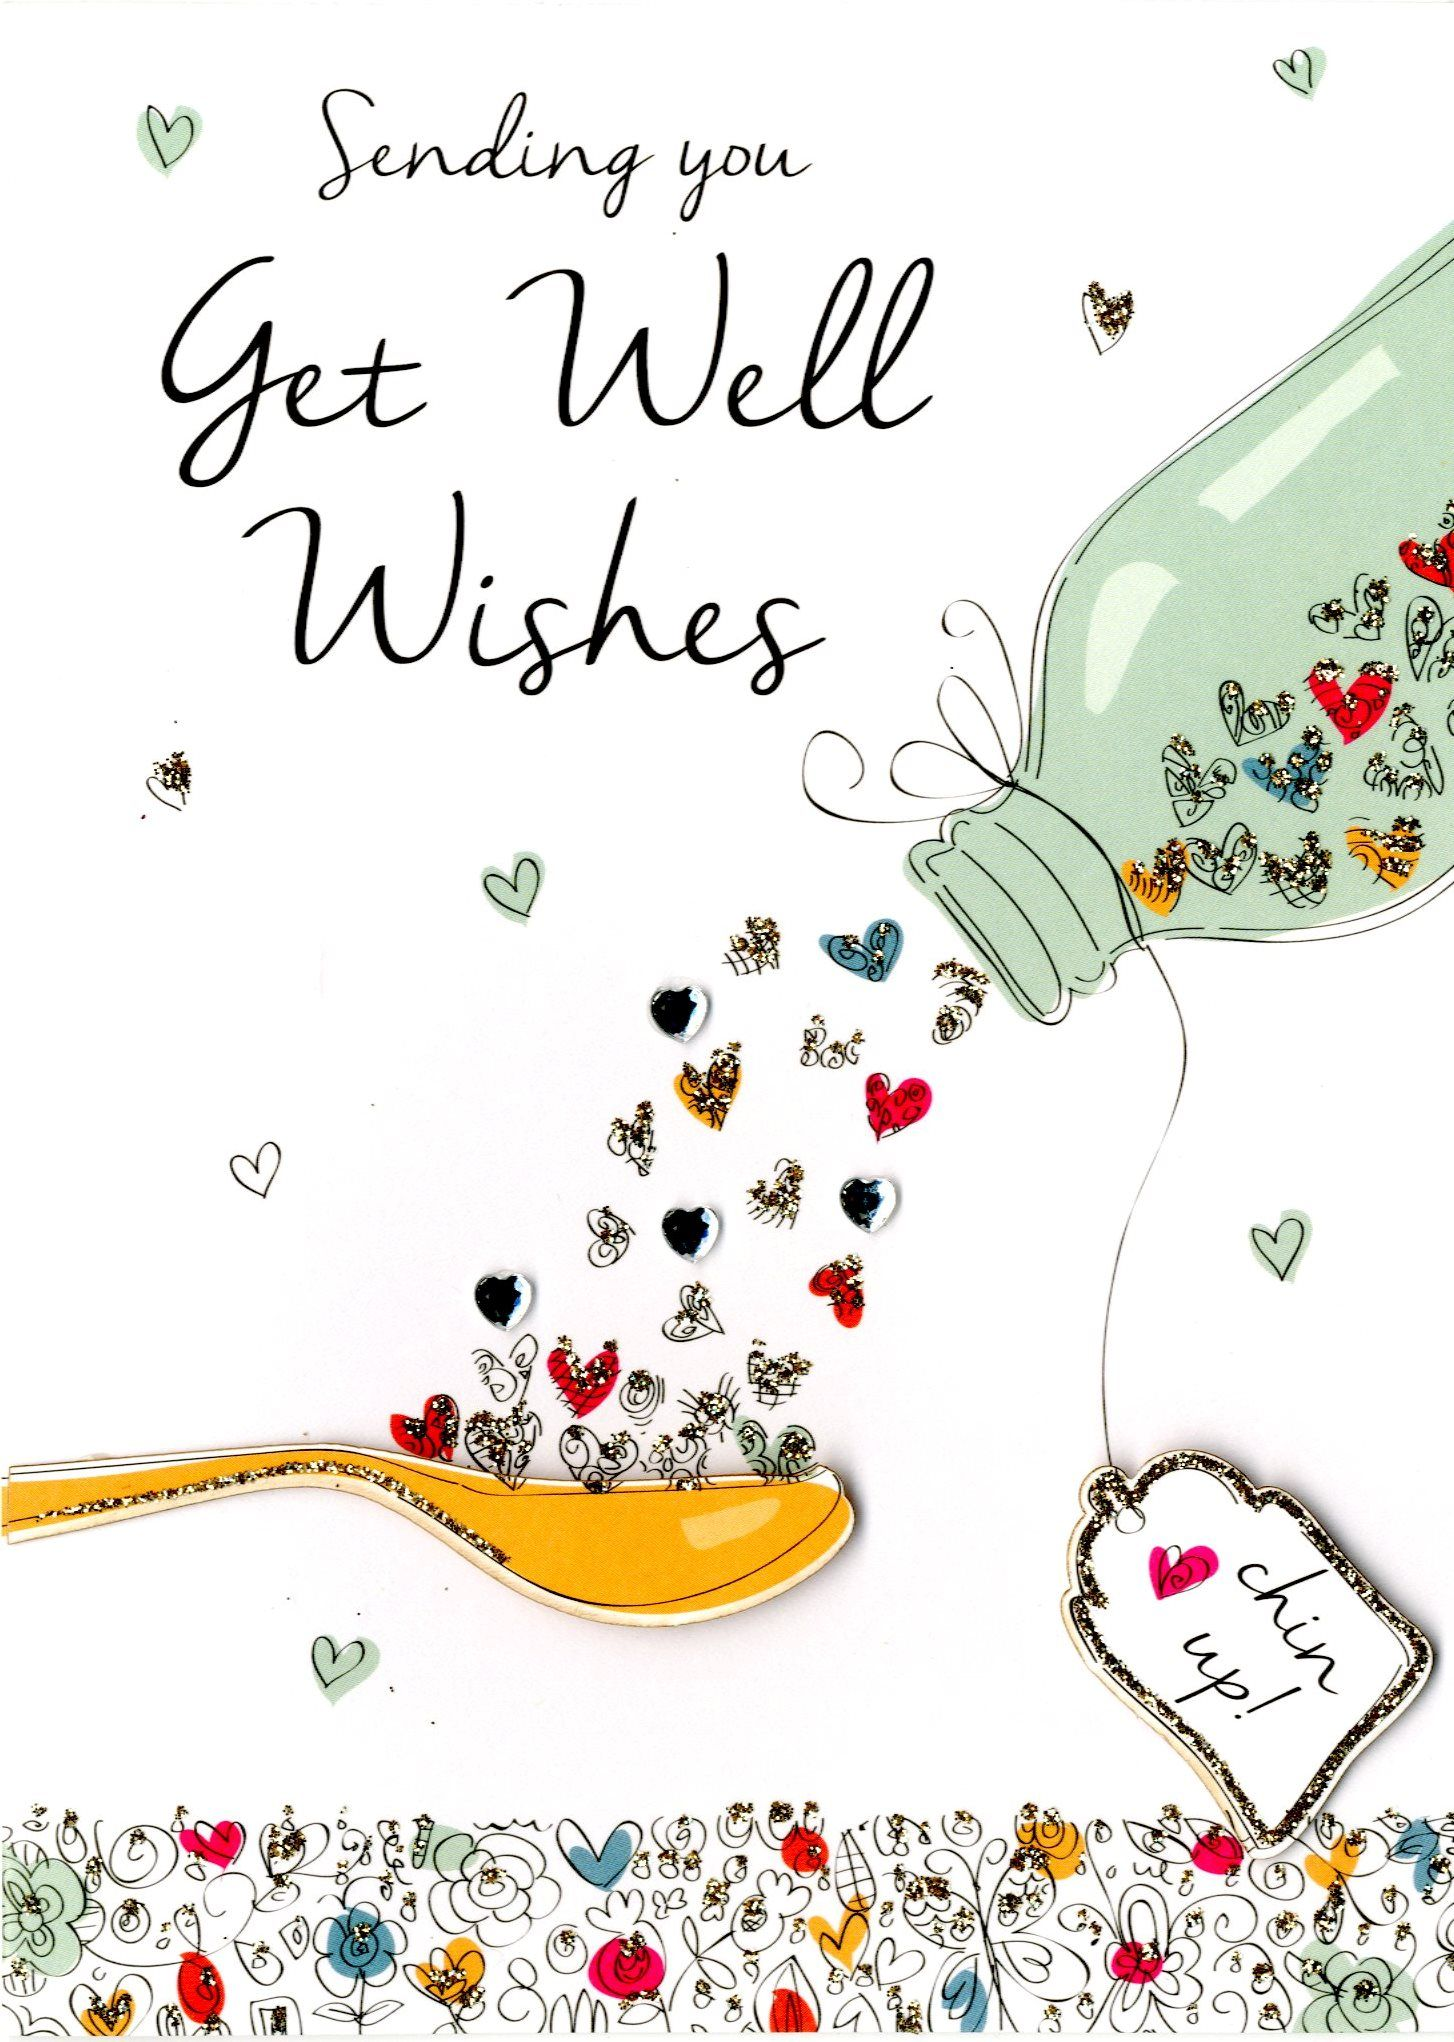 Feel Better Soon Quotes Get Well Soon  Get Well Wishes  Pinterest  Cards Feel Better